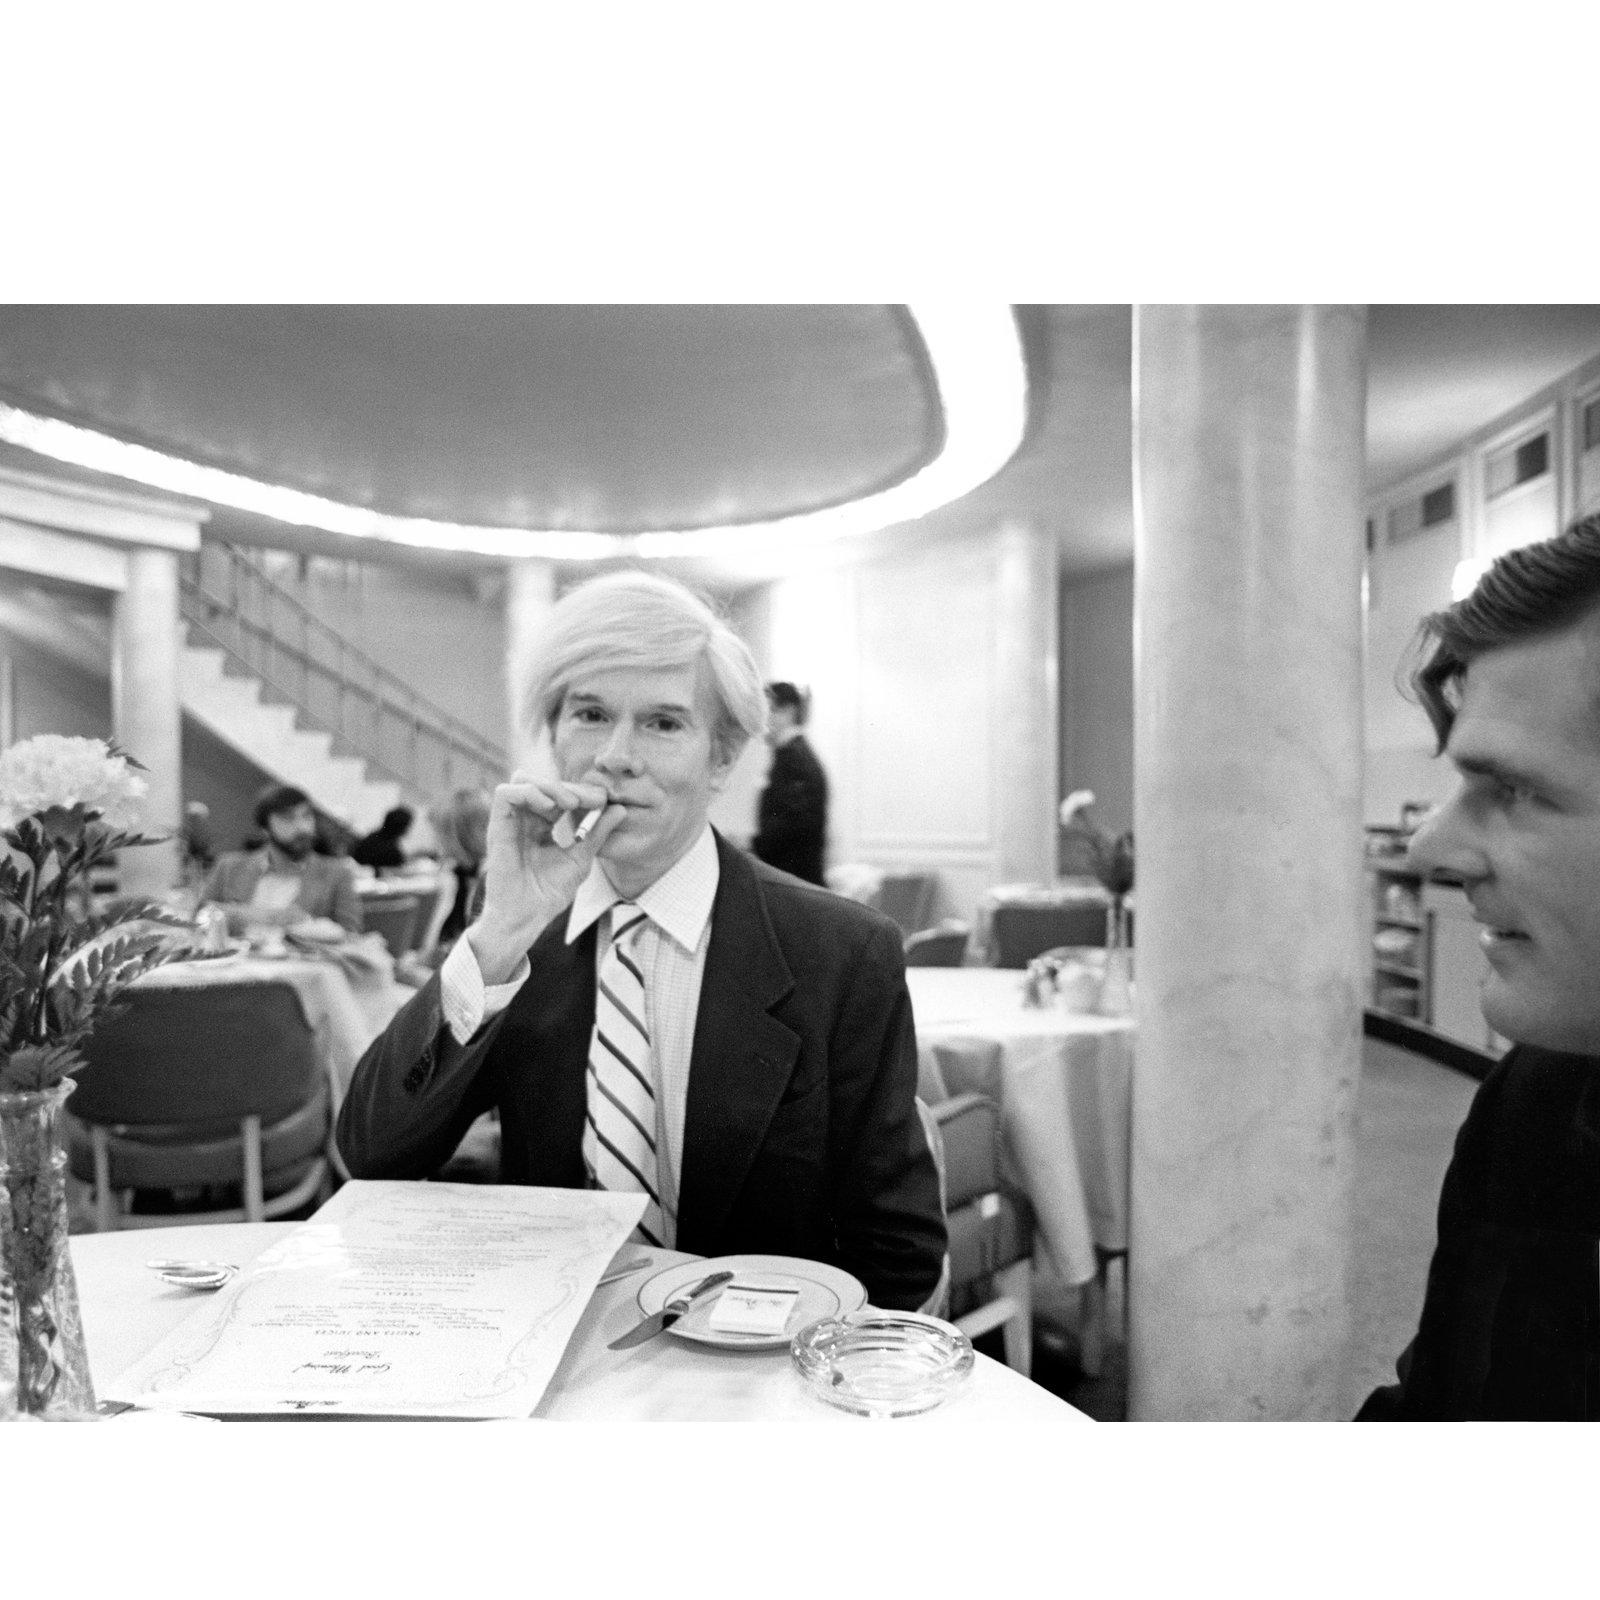 """Robert Levin, """"Andy Warhol Smokes at the Pierre Hotel 1981,"""" Print, 2015"""